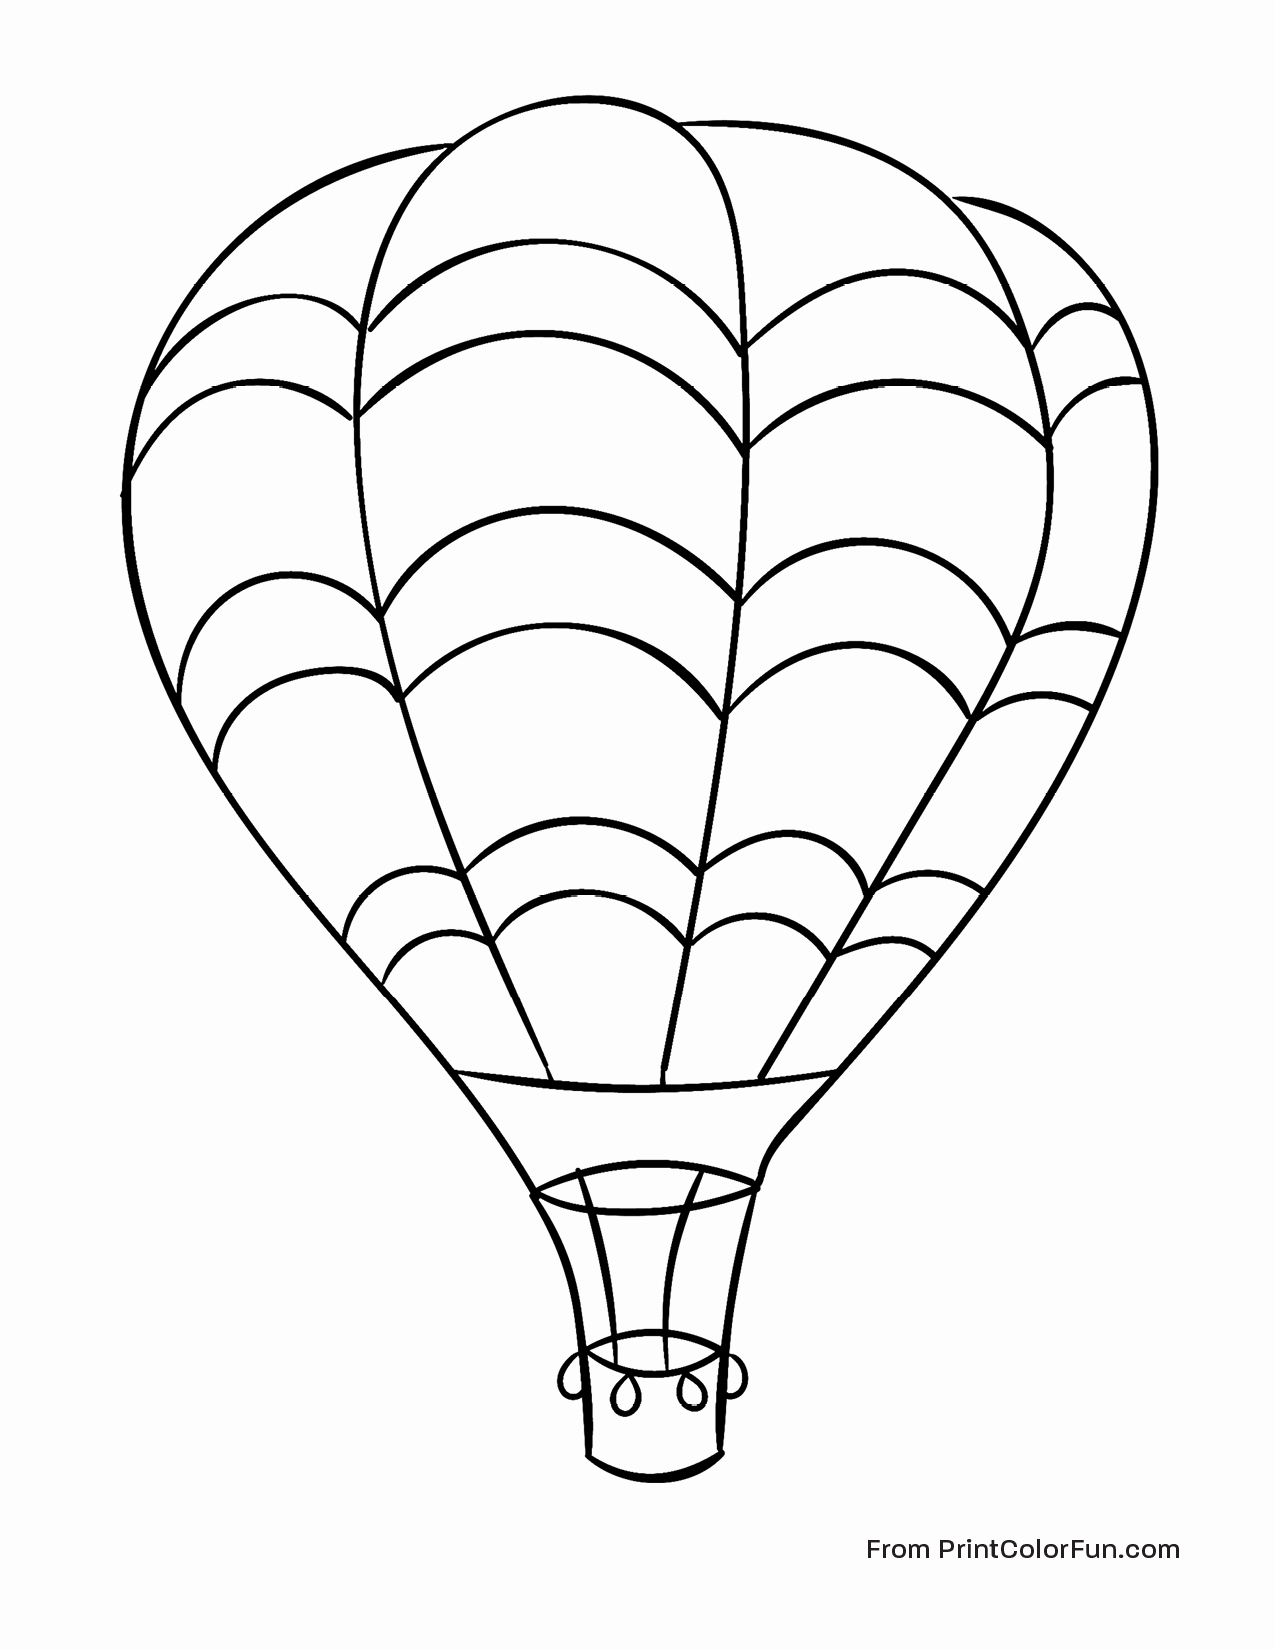 Surprise Hot Air Balloon Coloring Sheet Unbeli Unknown Collection Of Hot Air Balloon Coloring Page Collection